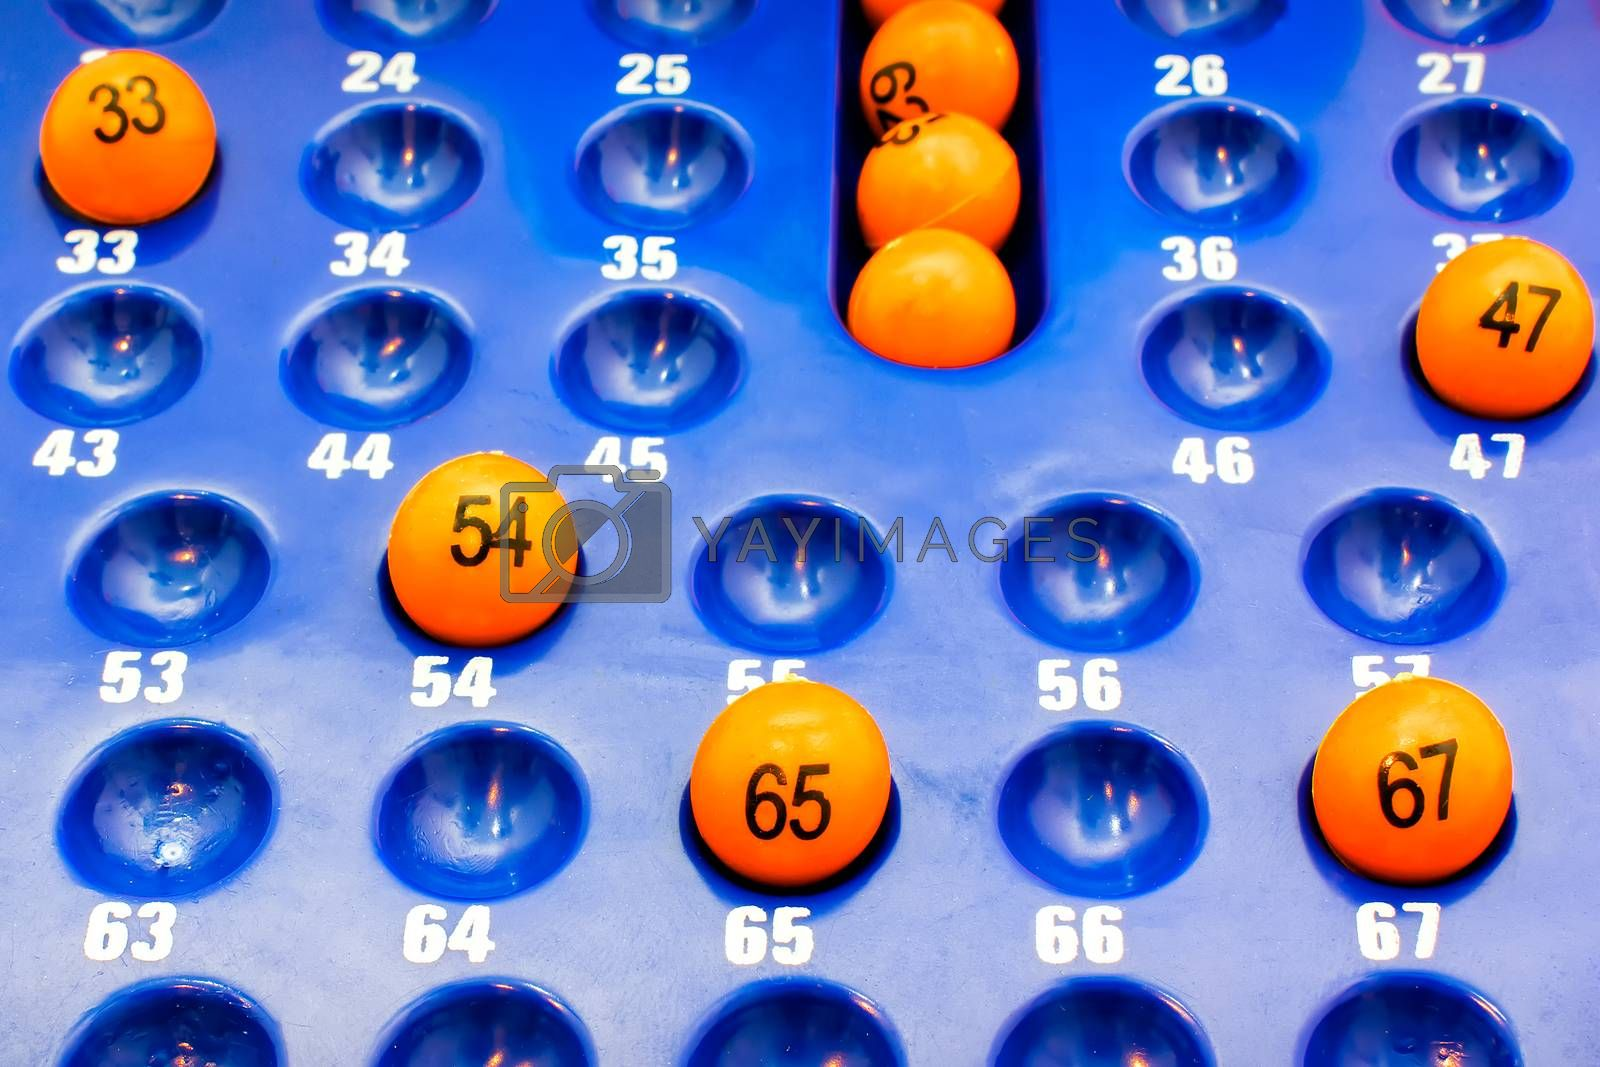 Blue Plastic Panel with Orange Bingo Balls